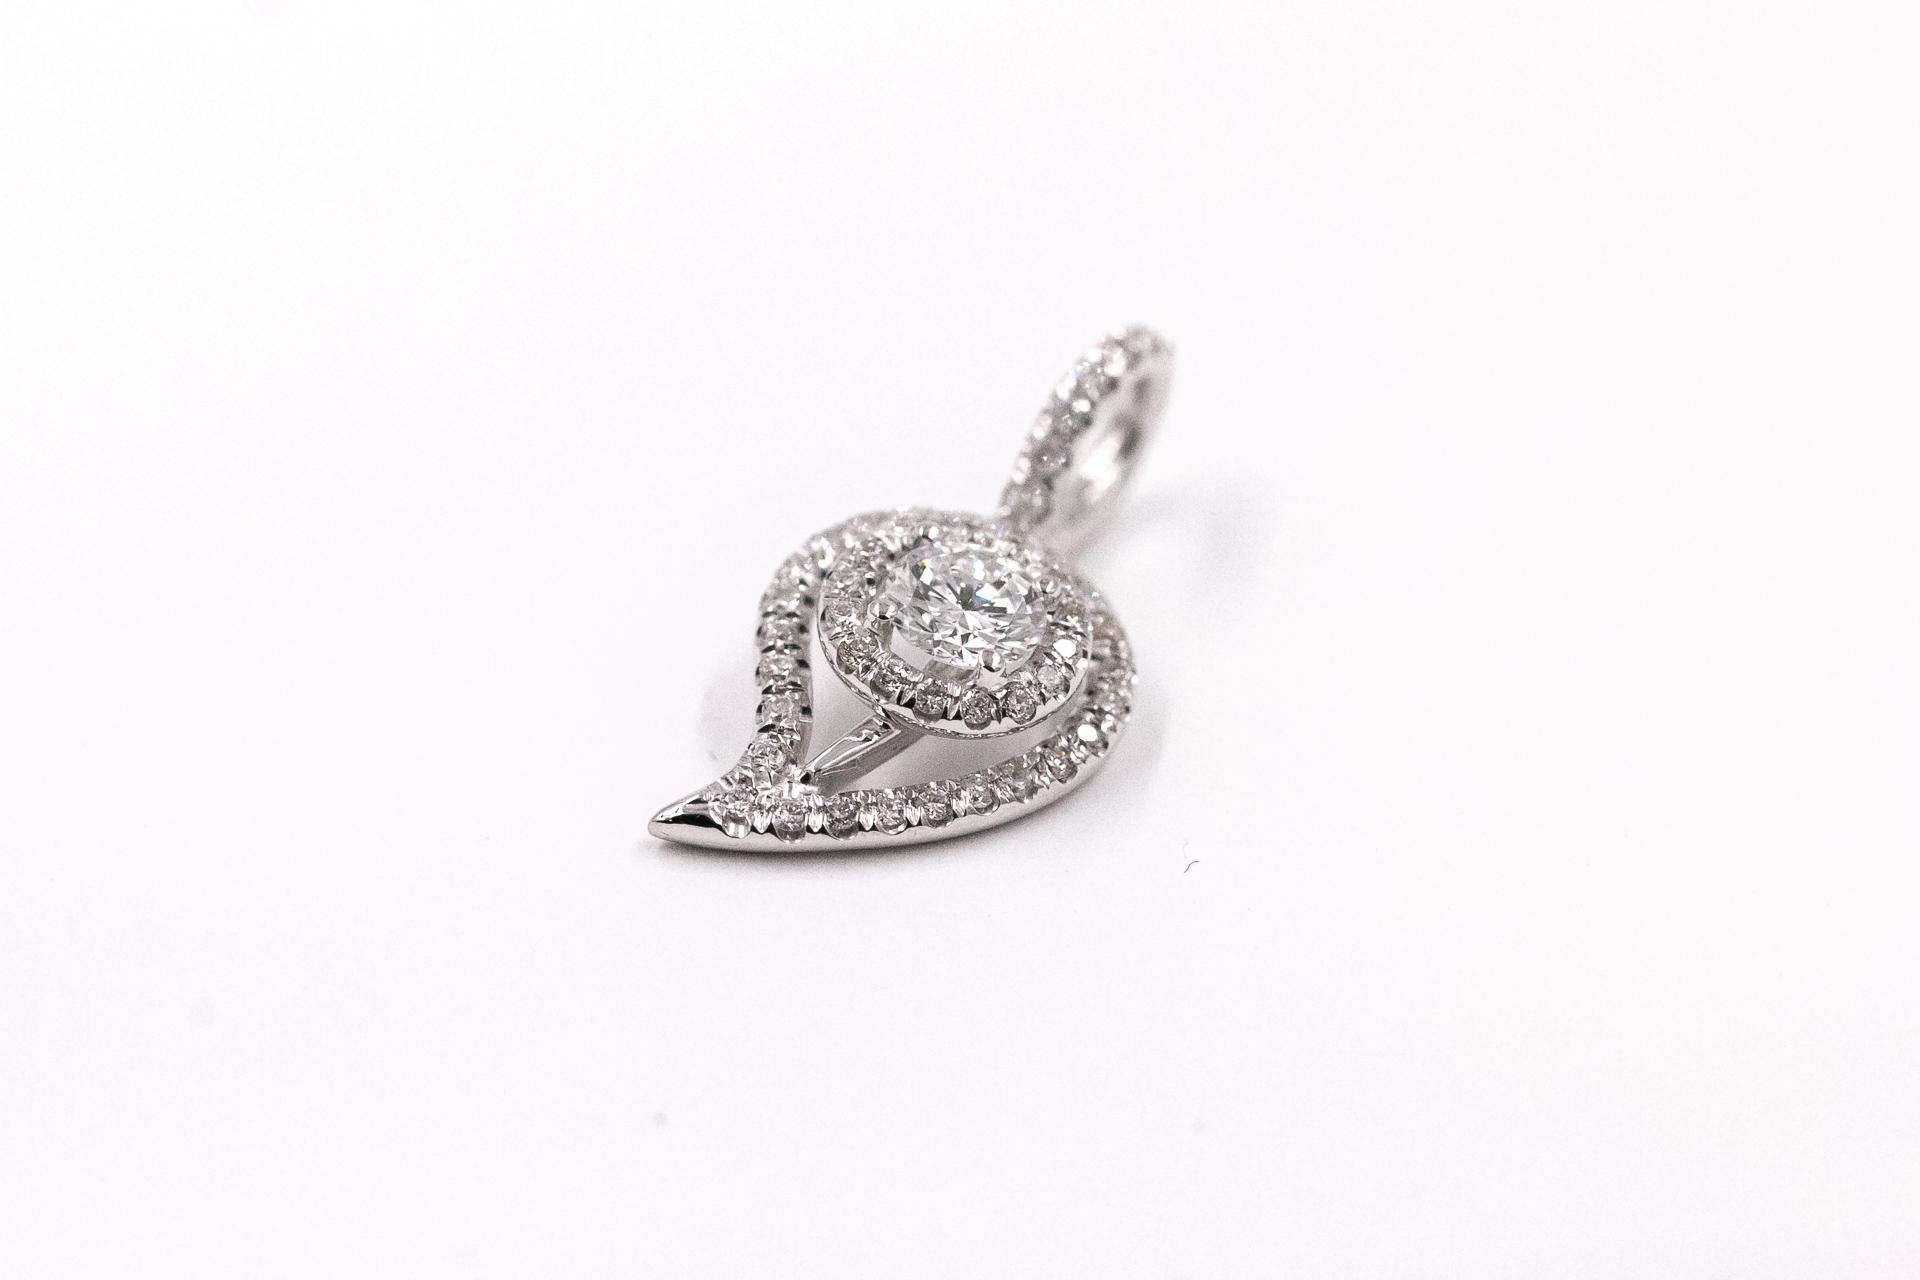 leaf-necklace-white-gold-diamonds-3